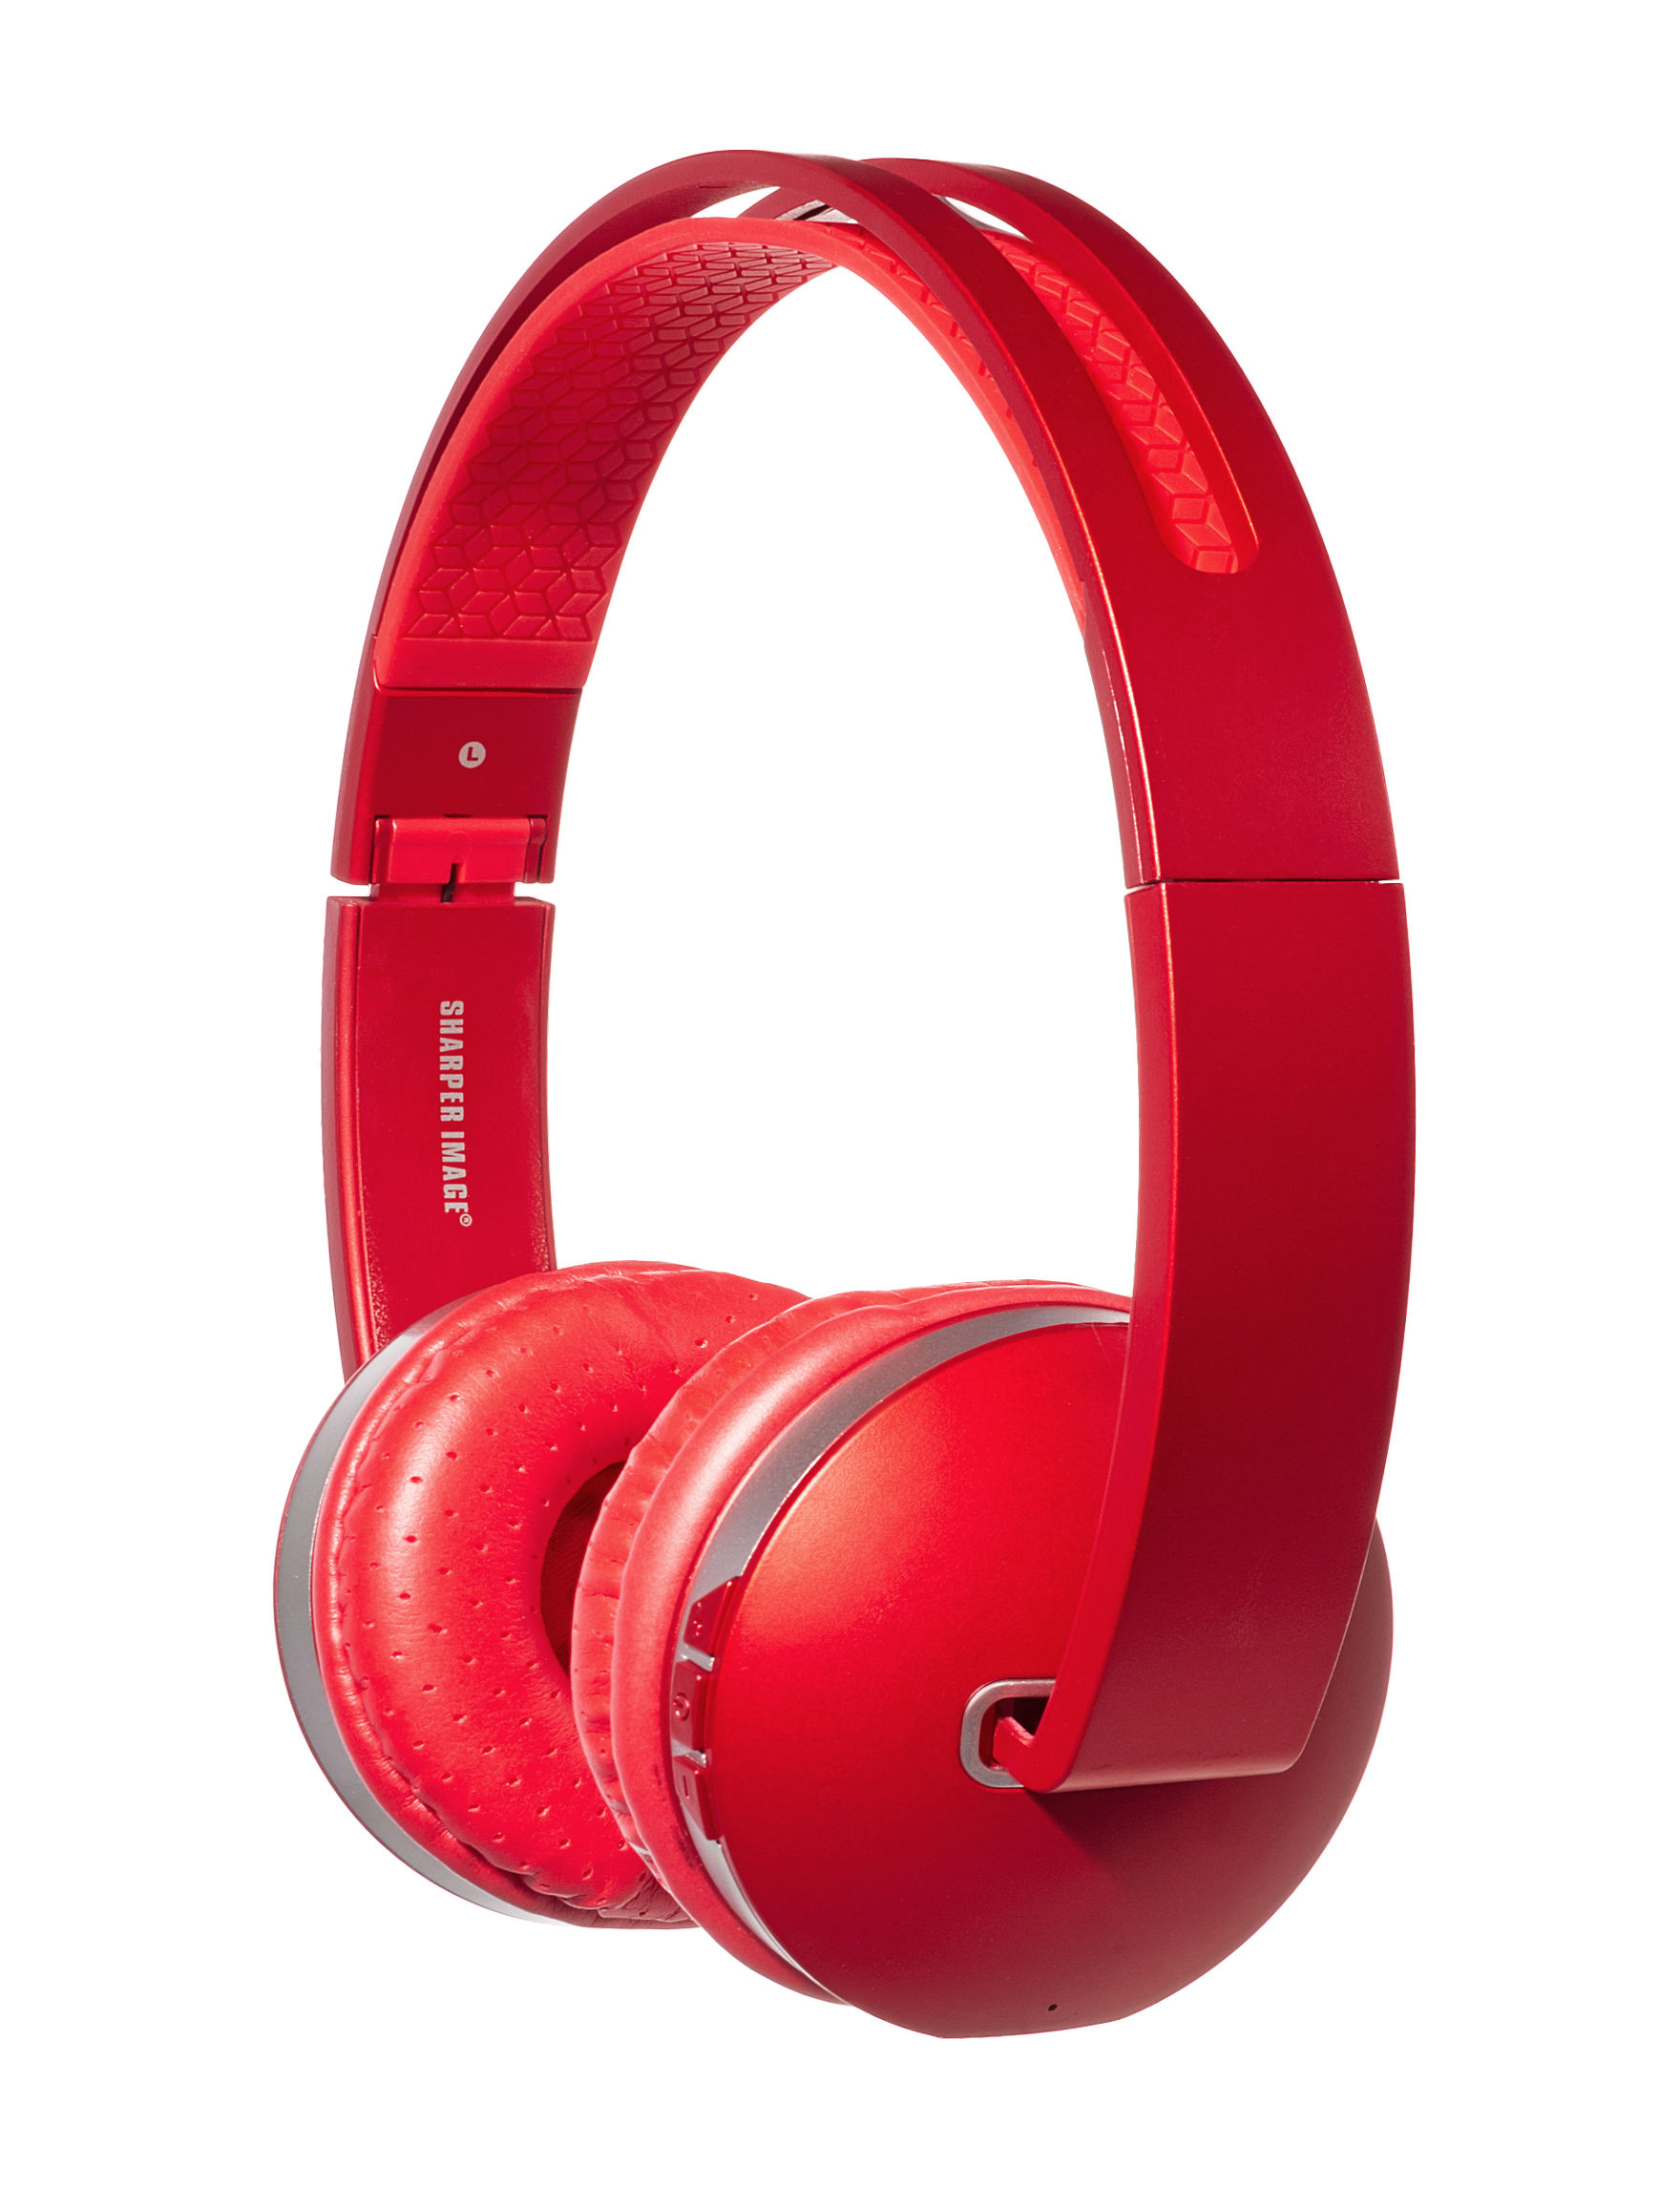 Sharper Image Red Headphones Home & Portable Audio Tech Accessories